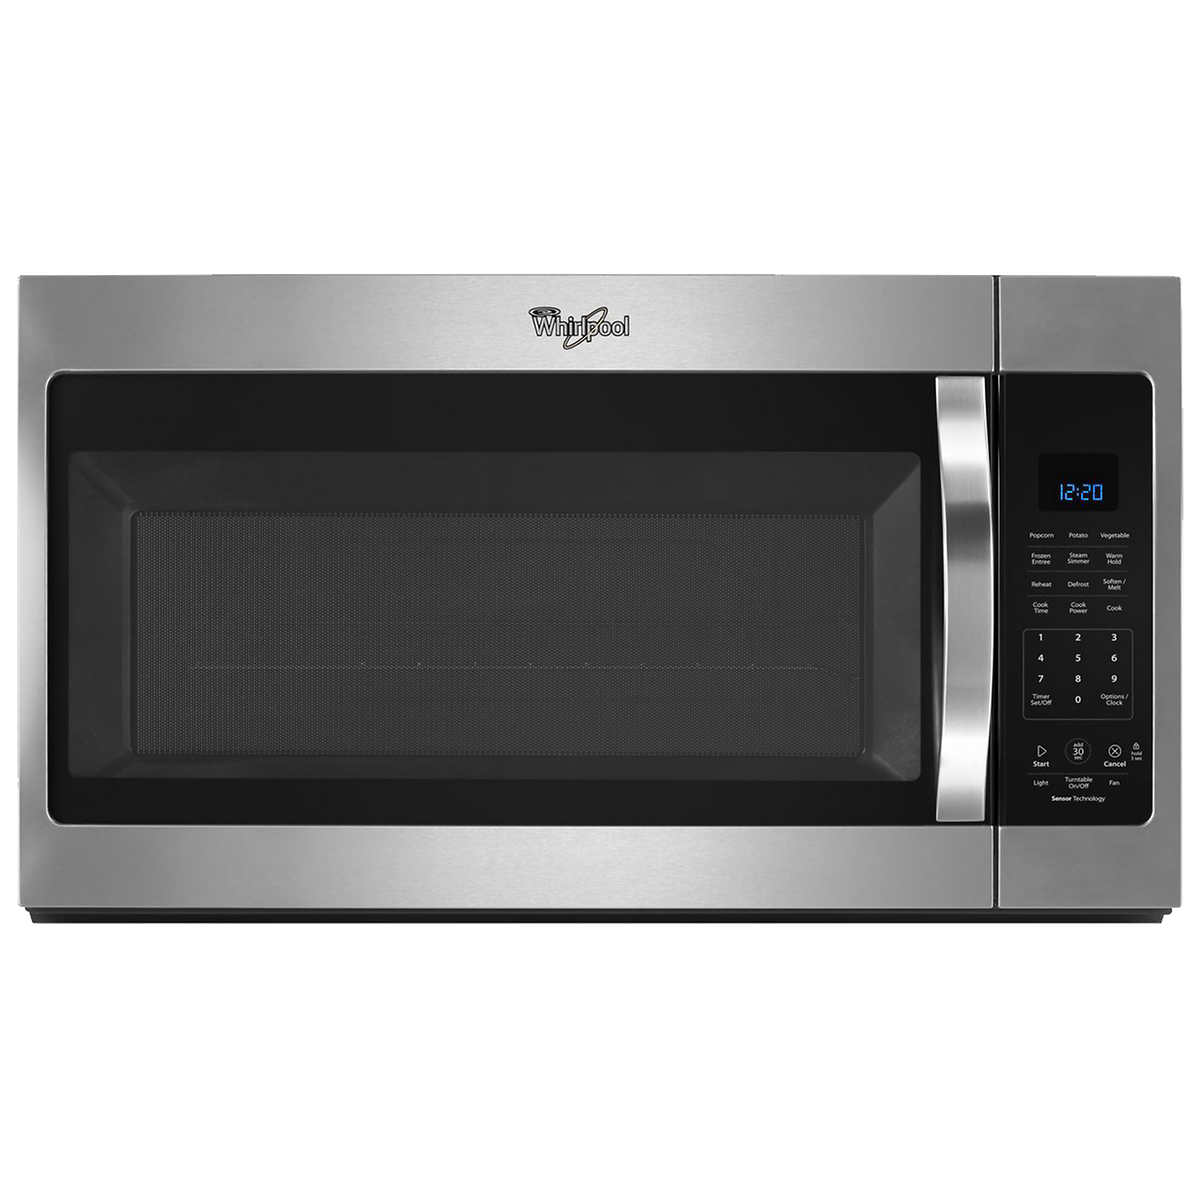 Whirlpool white ice convection microwave - Whirlpool 1 9cuft Stainless Steel Over The Range Steam Microwave With Sensor Cooking